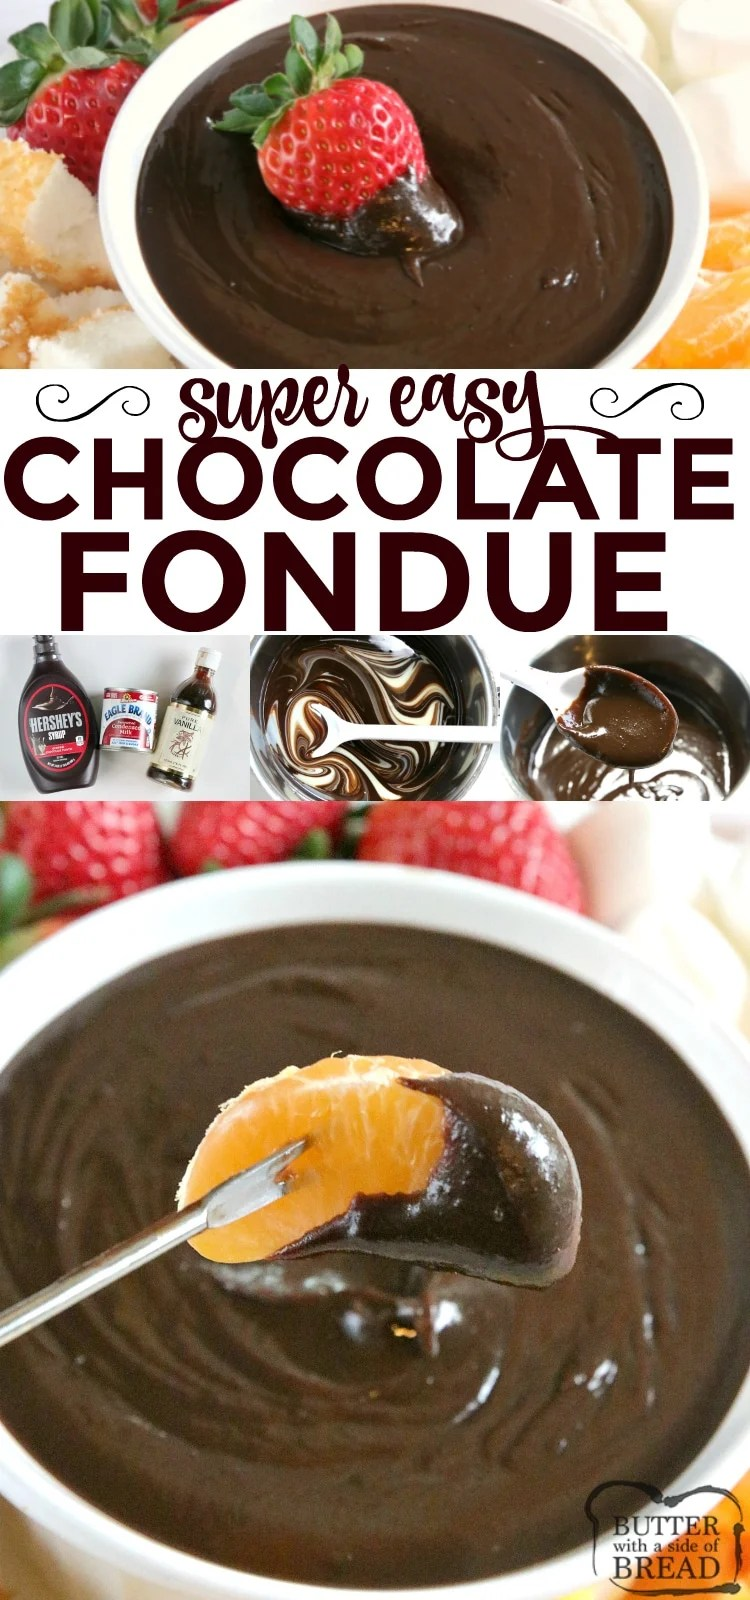 Easy Chocolate Fondue is made on the stove with only 3 ingredients and is the most delicious dessert for all occasions!